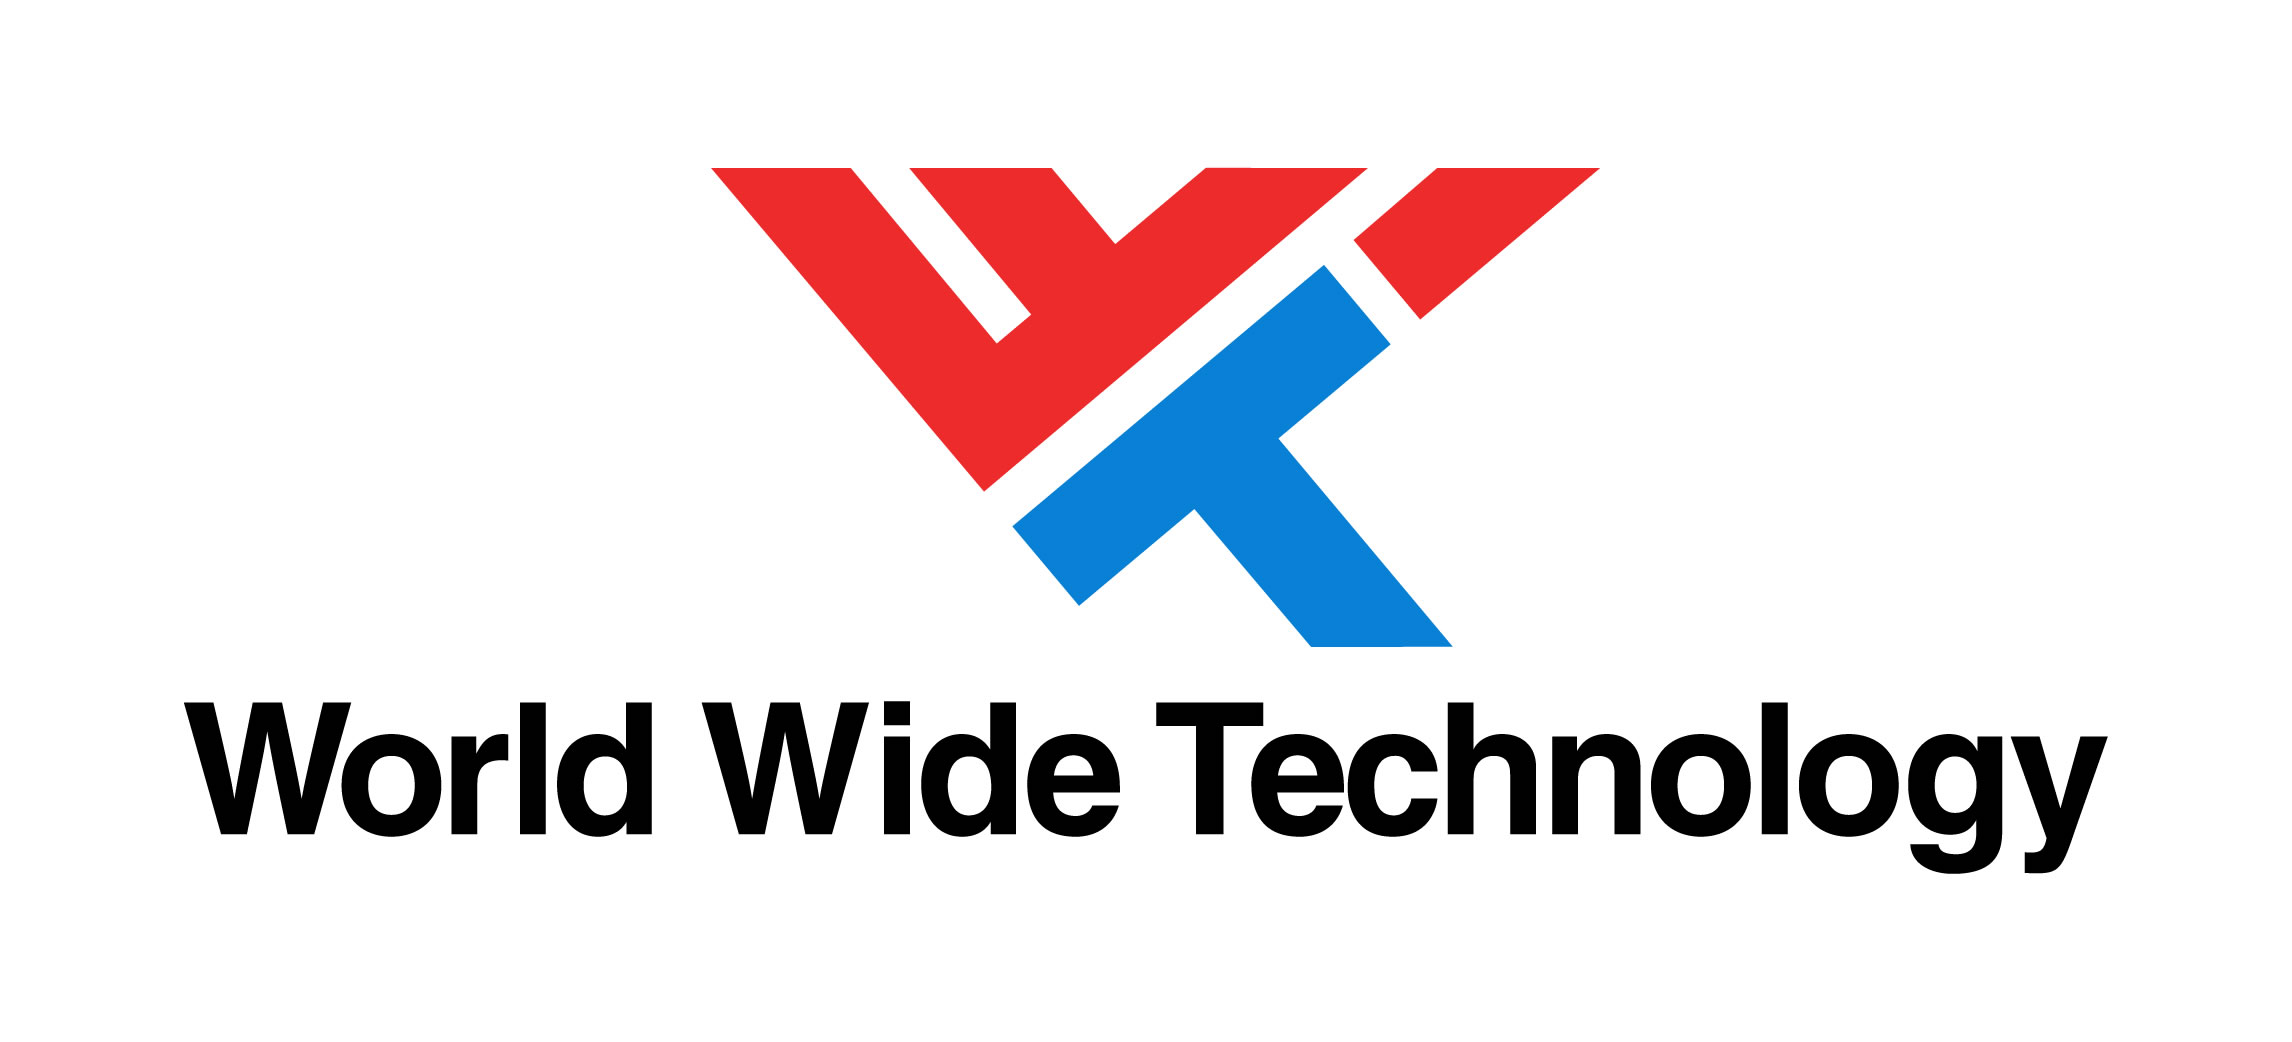 World Wide Technology 2018 Honoree Photo